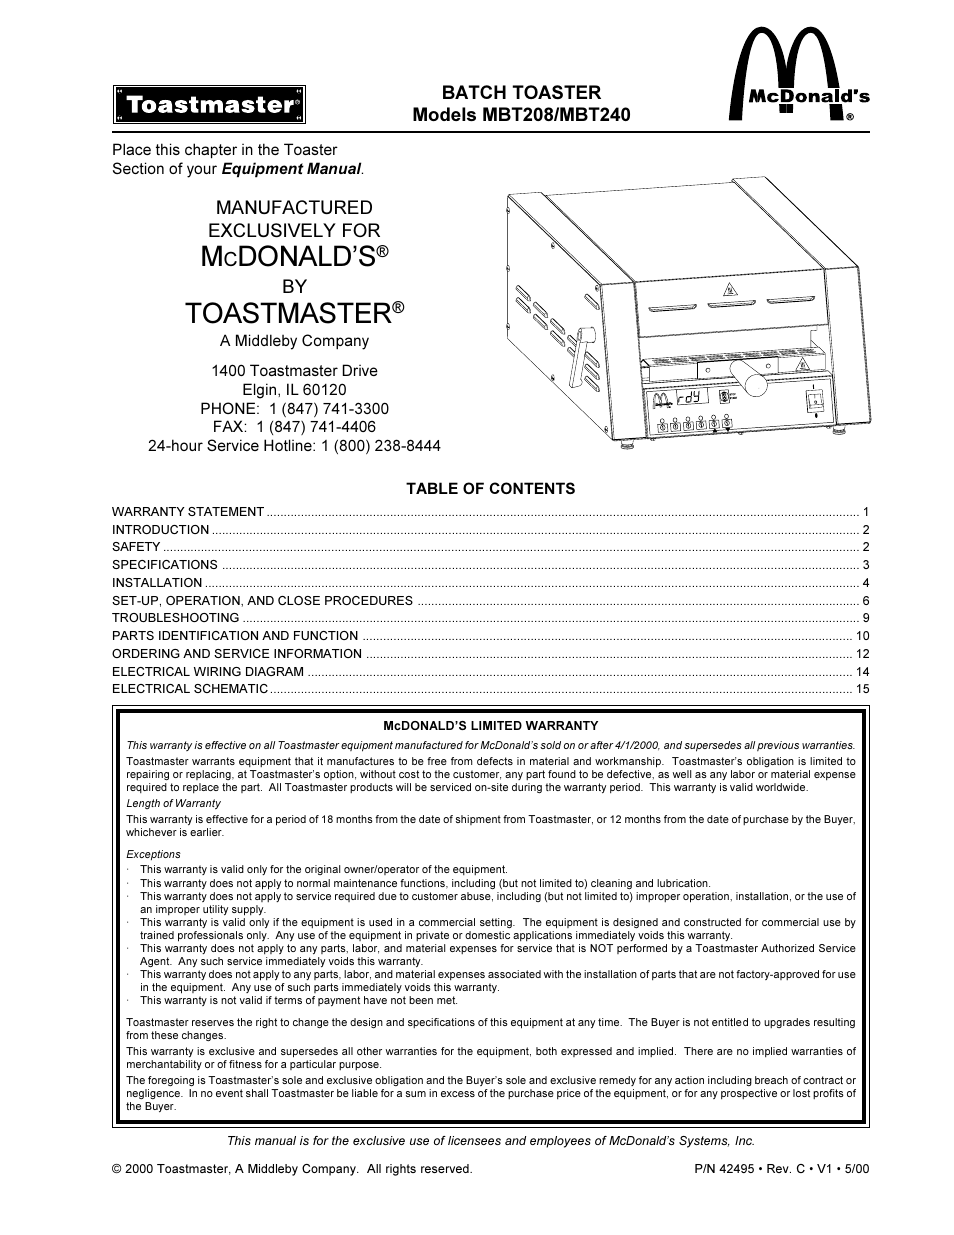 Toaster Electrical Diagram Schematics Wiring Schematic Toastmaster Free Download U2022 Oasis Dl Co Mechanisms Inside A